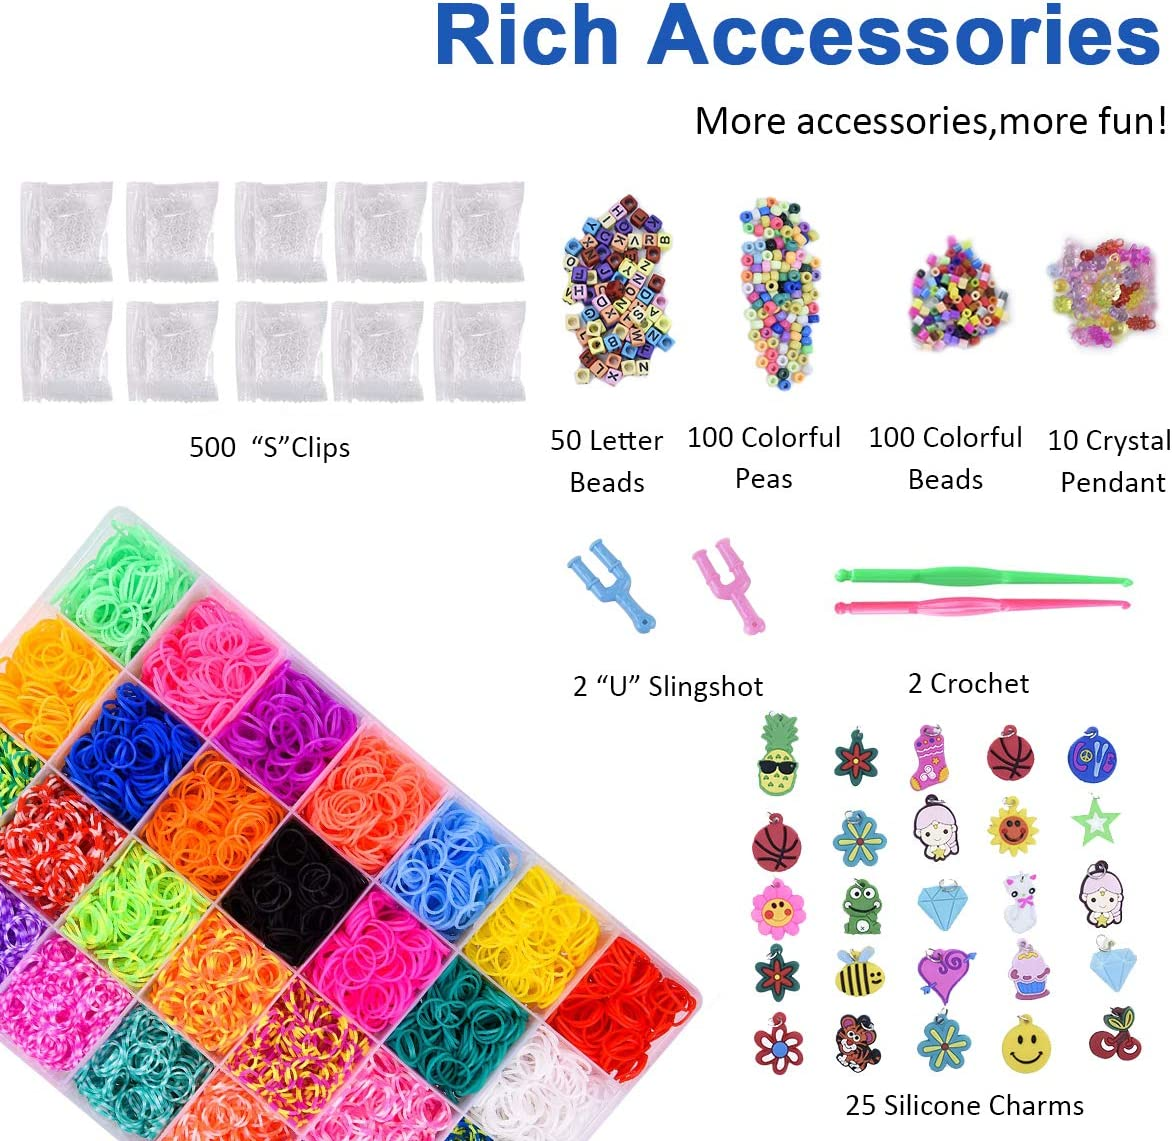 Yehtta Gifts for 5-10 Year Old Girls Rainbow Rubber Bands Loom Kit Kids Art Crafts DIY Toys Bracelet Making Kit Personalized Handmade Beads Rubber Hair Band Christmas Birthday Gift for Kids